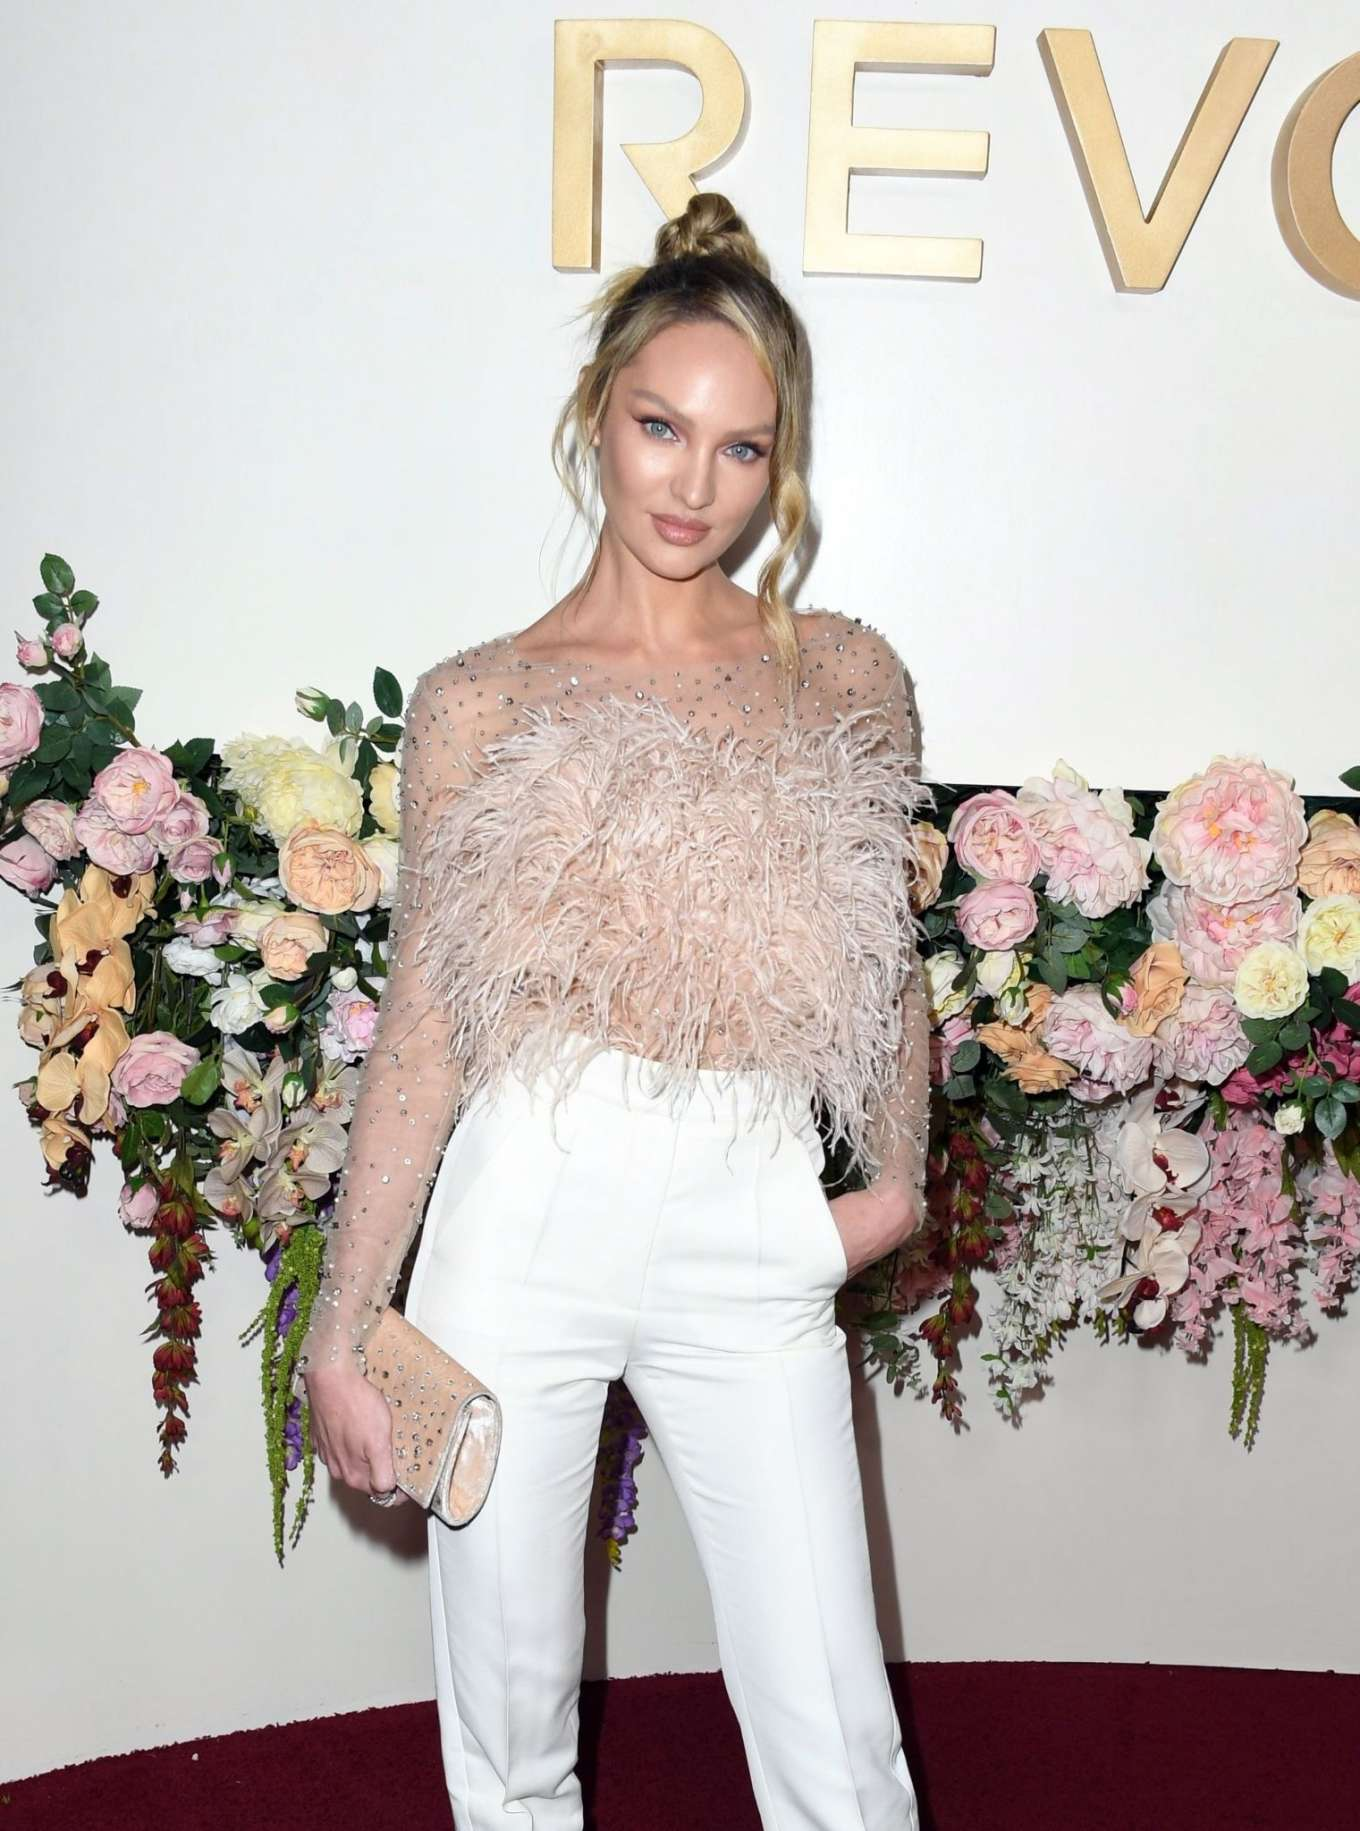 Candice Swanepoel 2019 : Candice Swanepoel – 2019 REVOLVE awards in West Hollywood-03